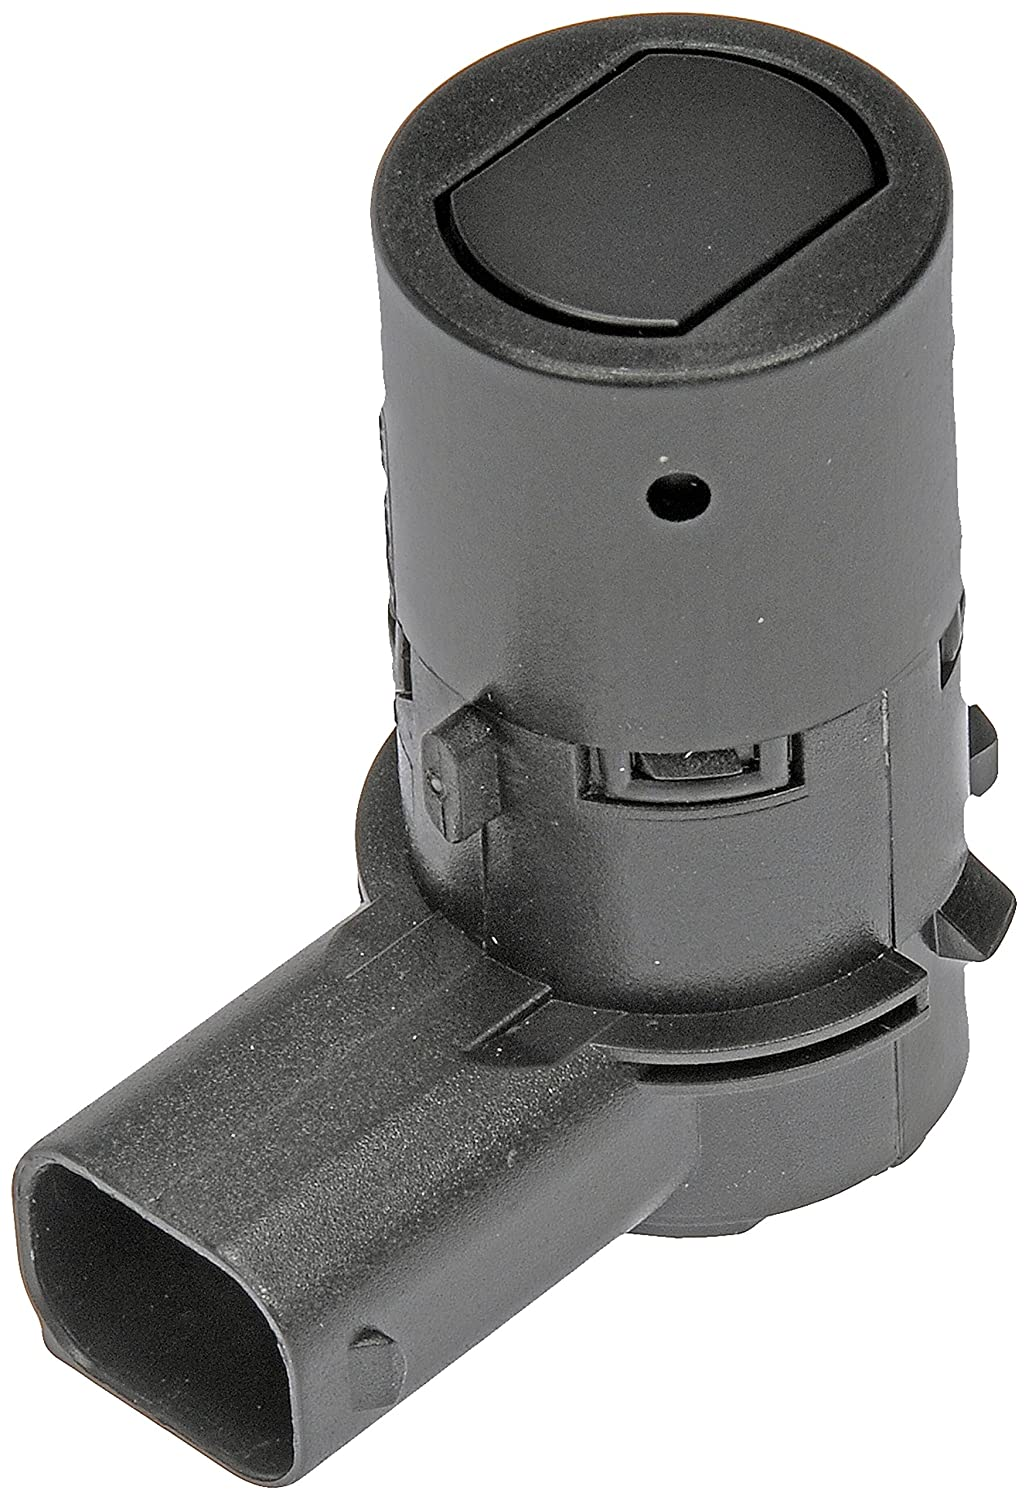 Dorman 684-019 Parking Assist Sensor